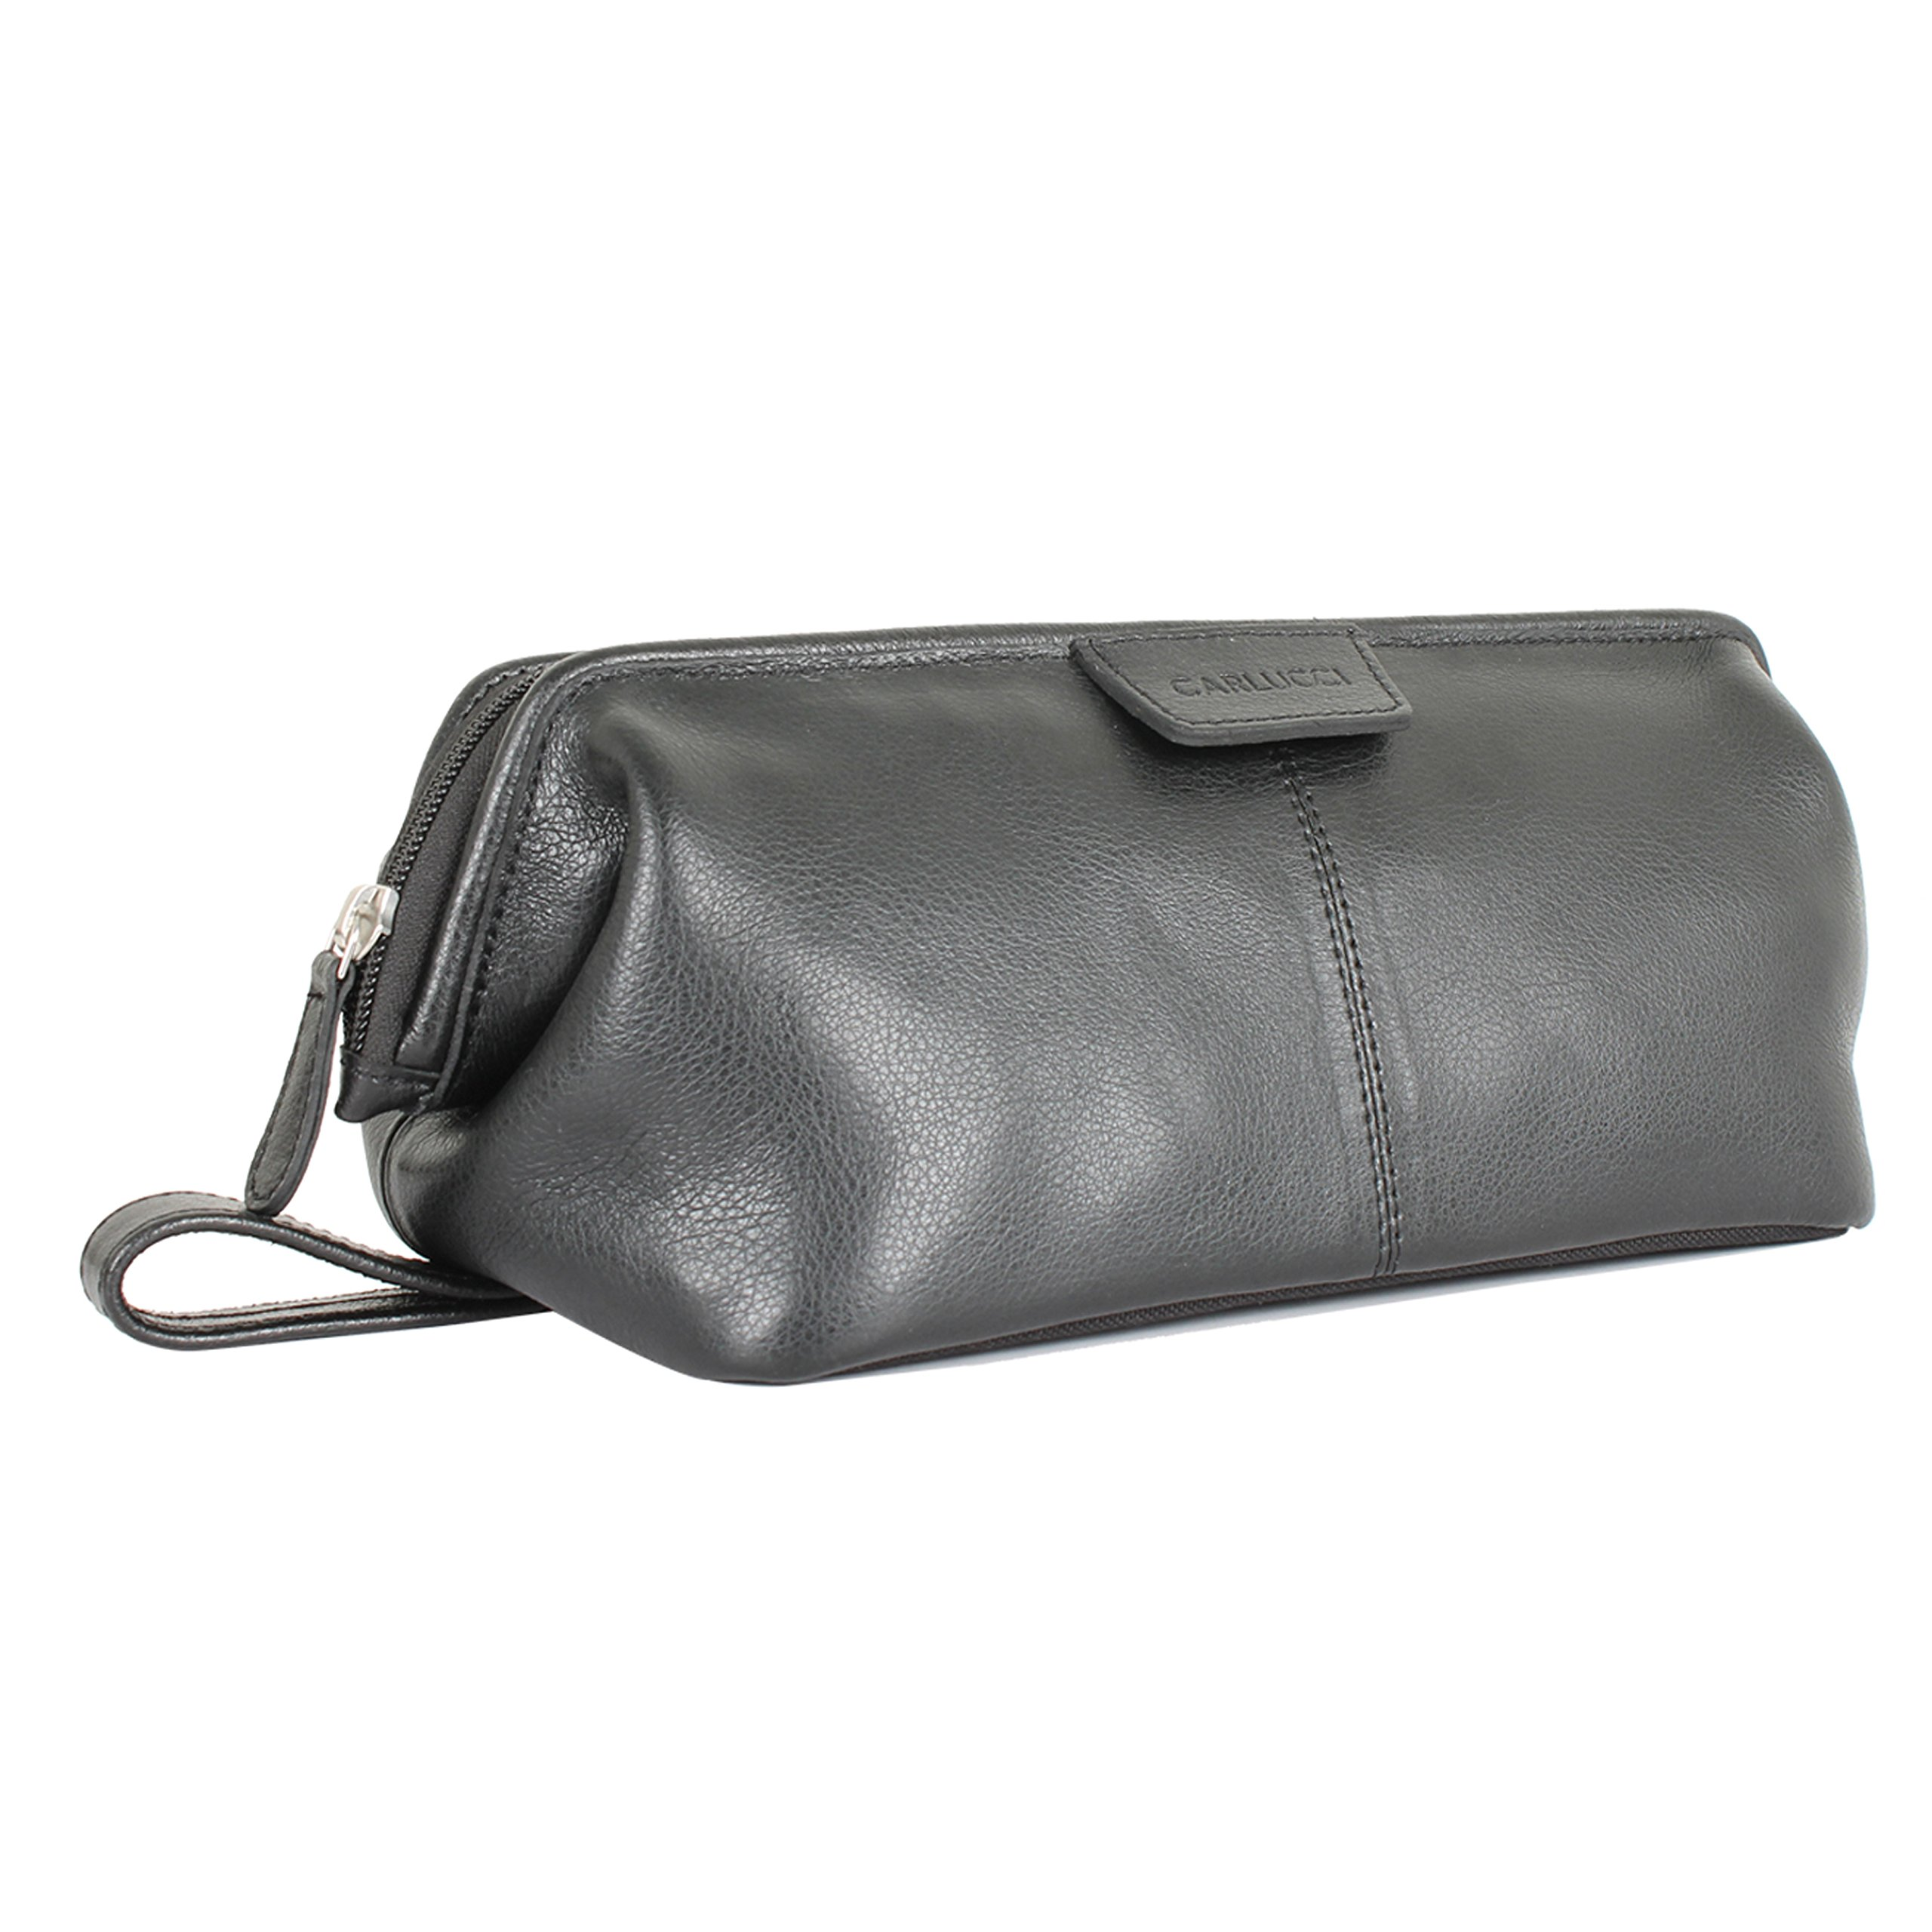 Carlucci Leather Original Leather Toiletry Bag for Men. Stylish Black Dopp Kit with Large Opening, Easy Durable Zipper, Rich Genuine Cowhide, Waterproof Bottom. In Black by CARLUCCI LEATHER